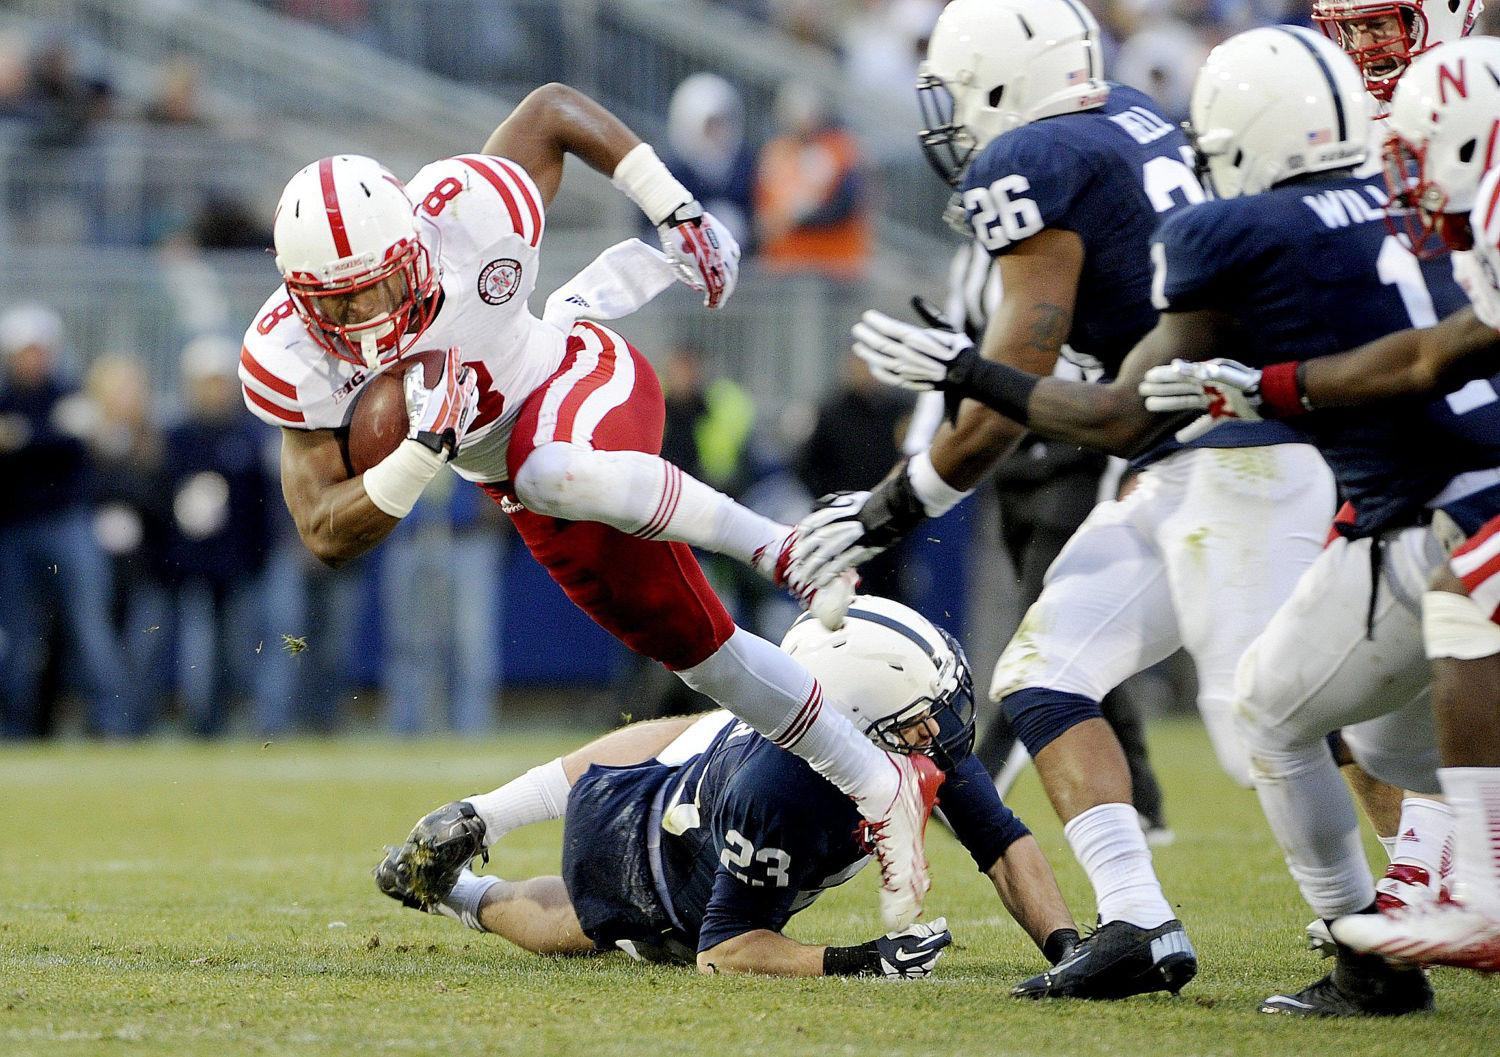 Nebraska running back Ameer Abdullah has rushed for 625 yards and five touchdowns in four games this season. He is emerging as an early Heisman candidate.